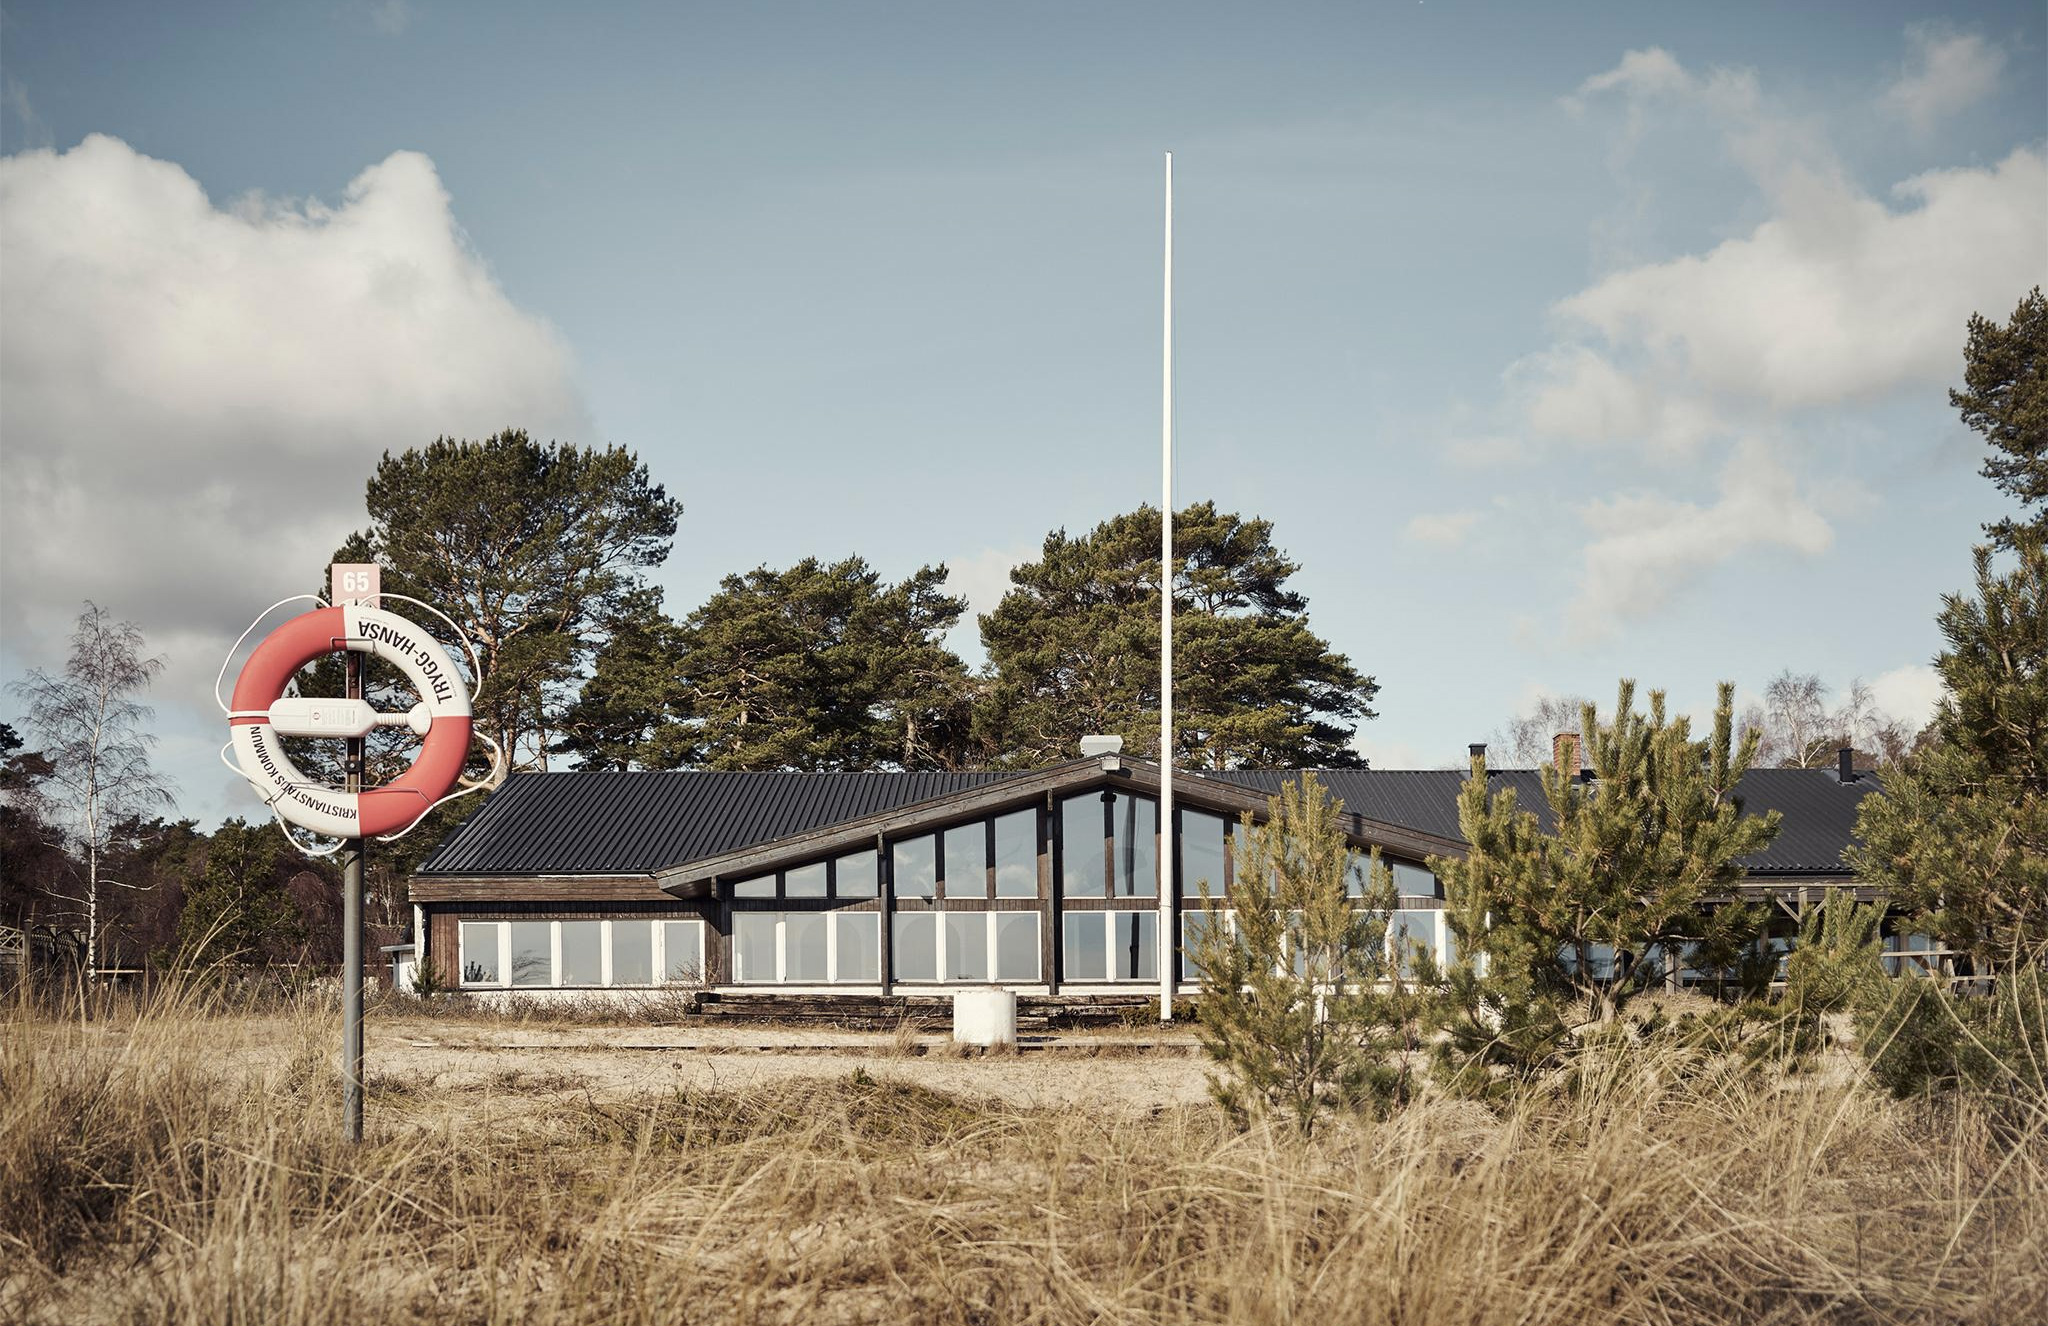 Historic 1930s beach resort for sale in Sweden's Skåne via Fantastic Frank